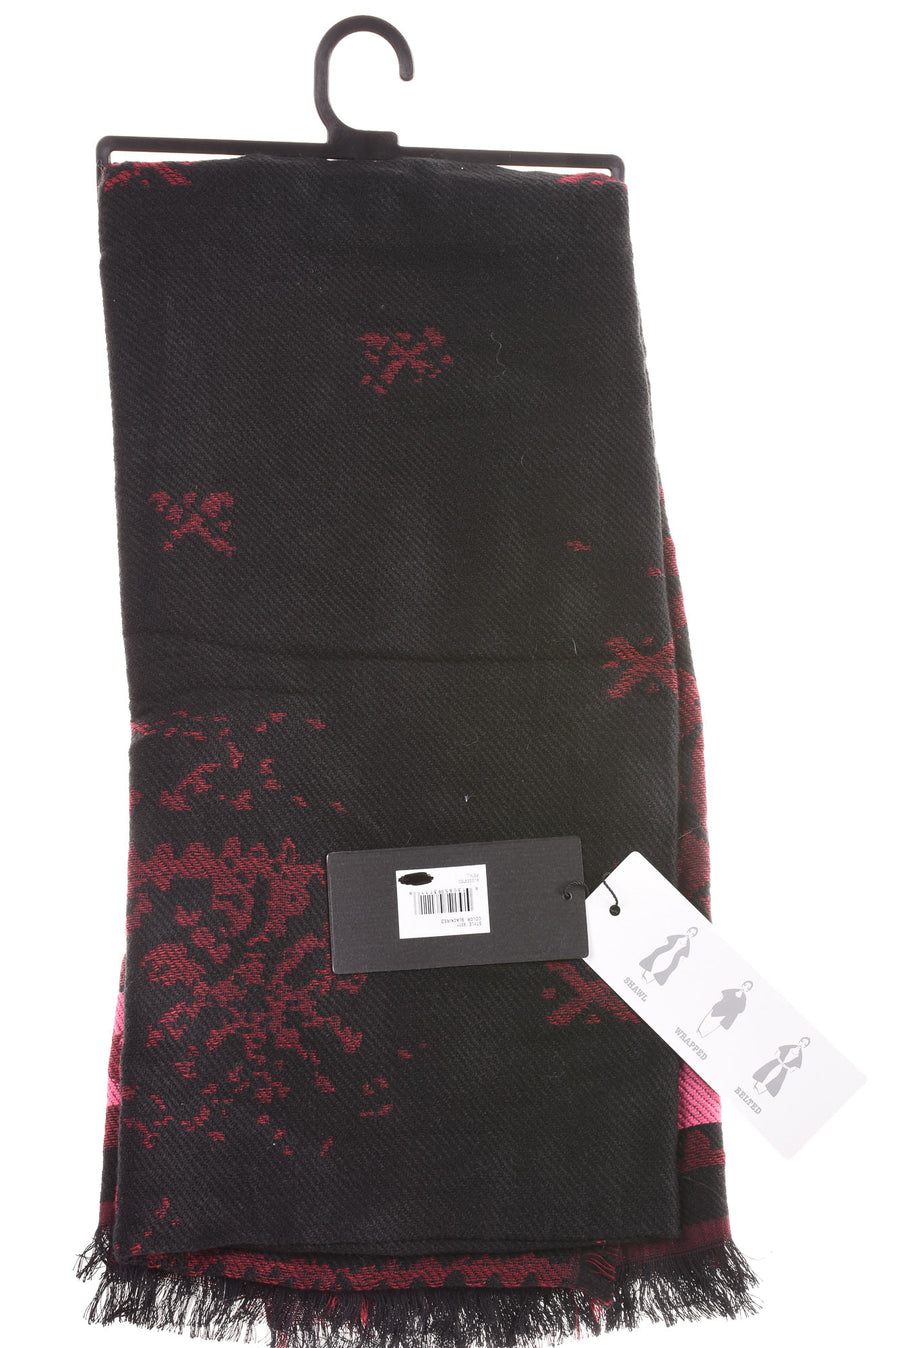 NEW Modena Women's Scarf One Size Black, Pink, & Red